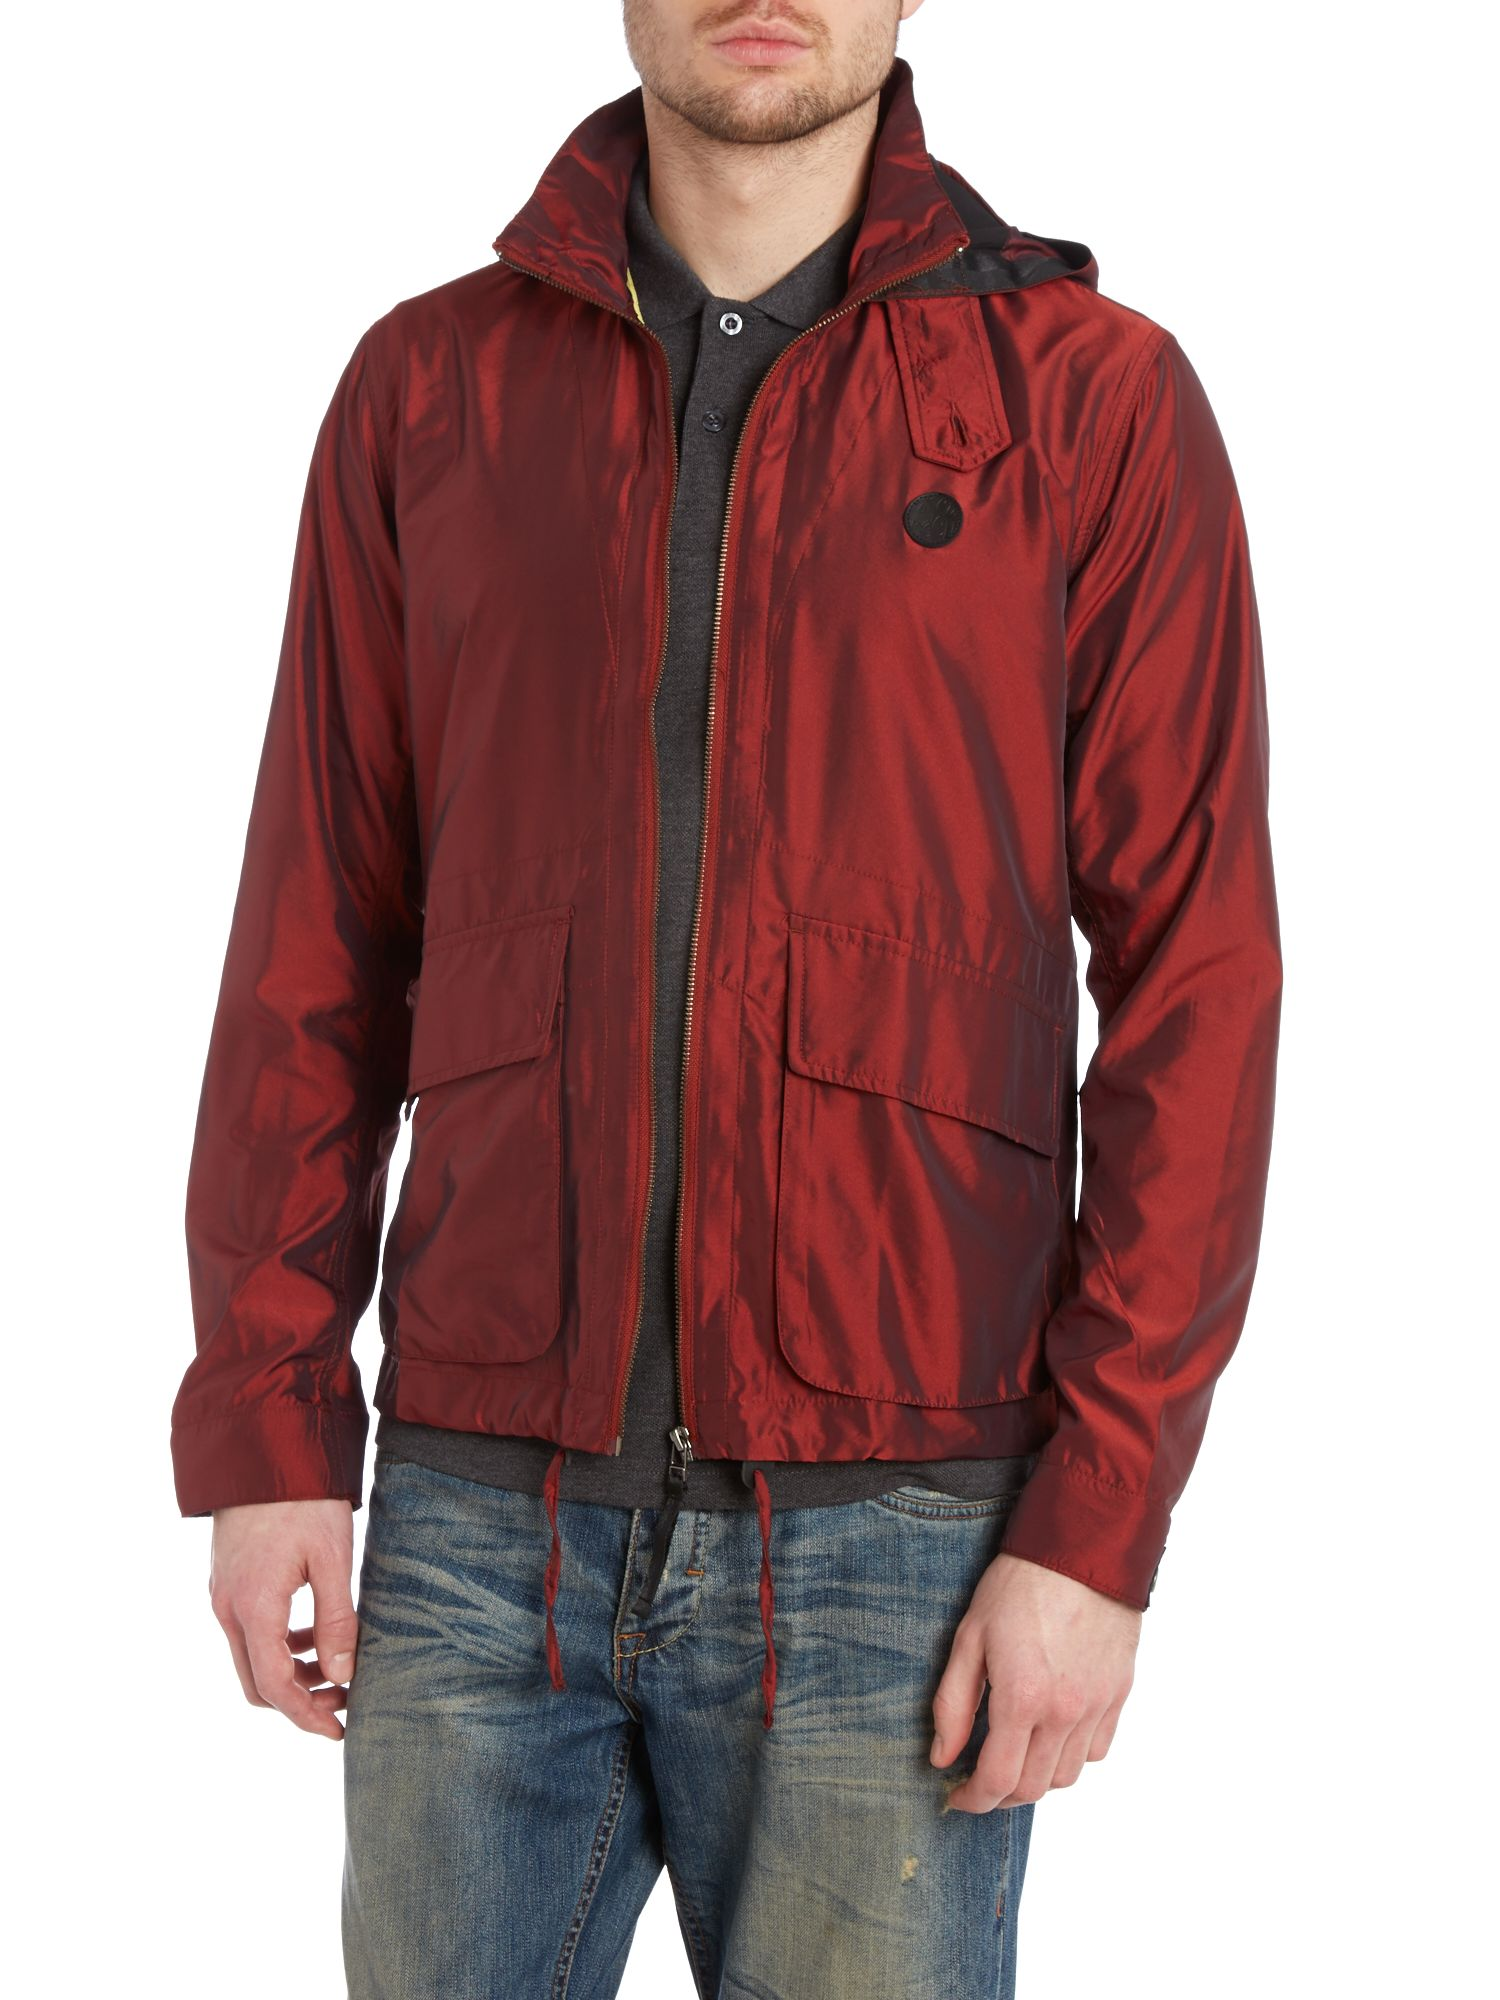 Two pocket zip up hooded poly jacket